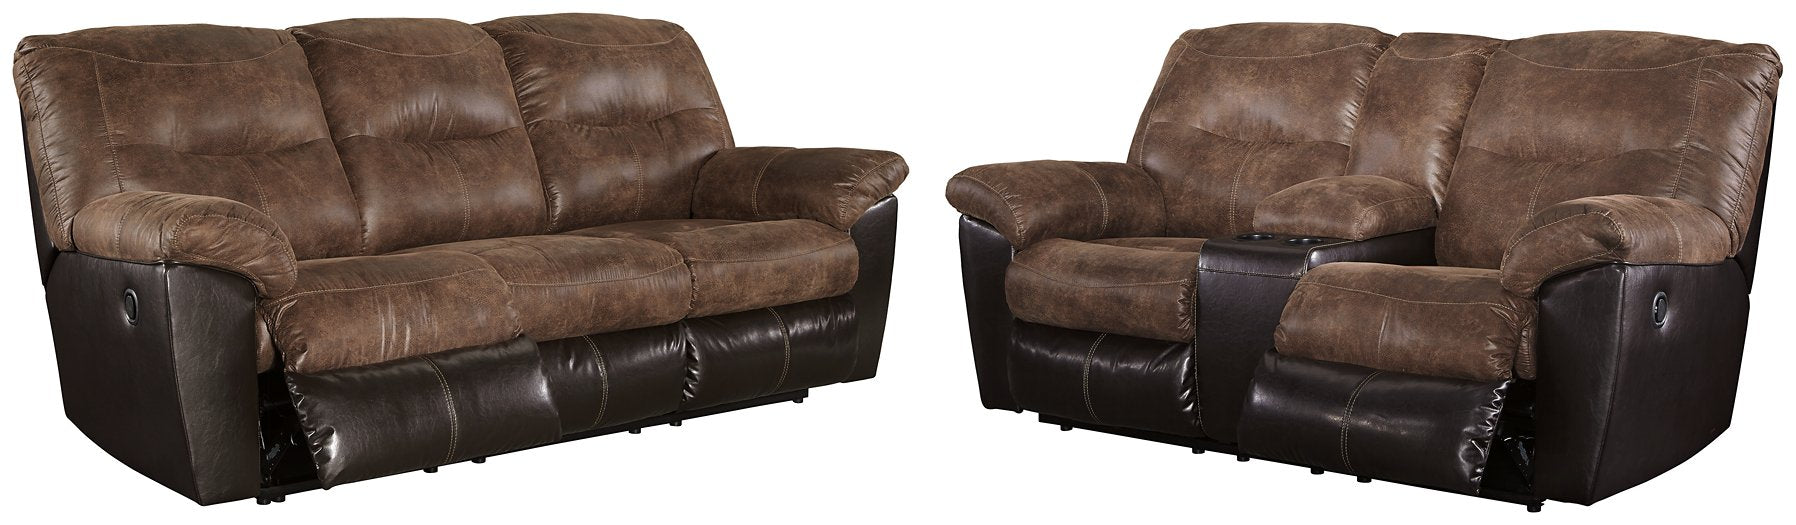 Follett Signature Design Contemporary 2-Piece Living Room Set image